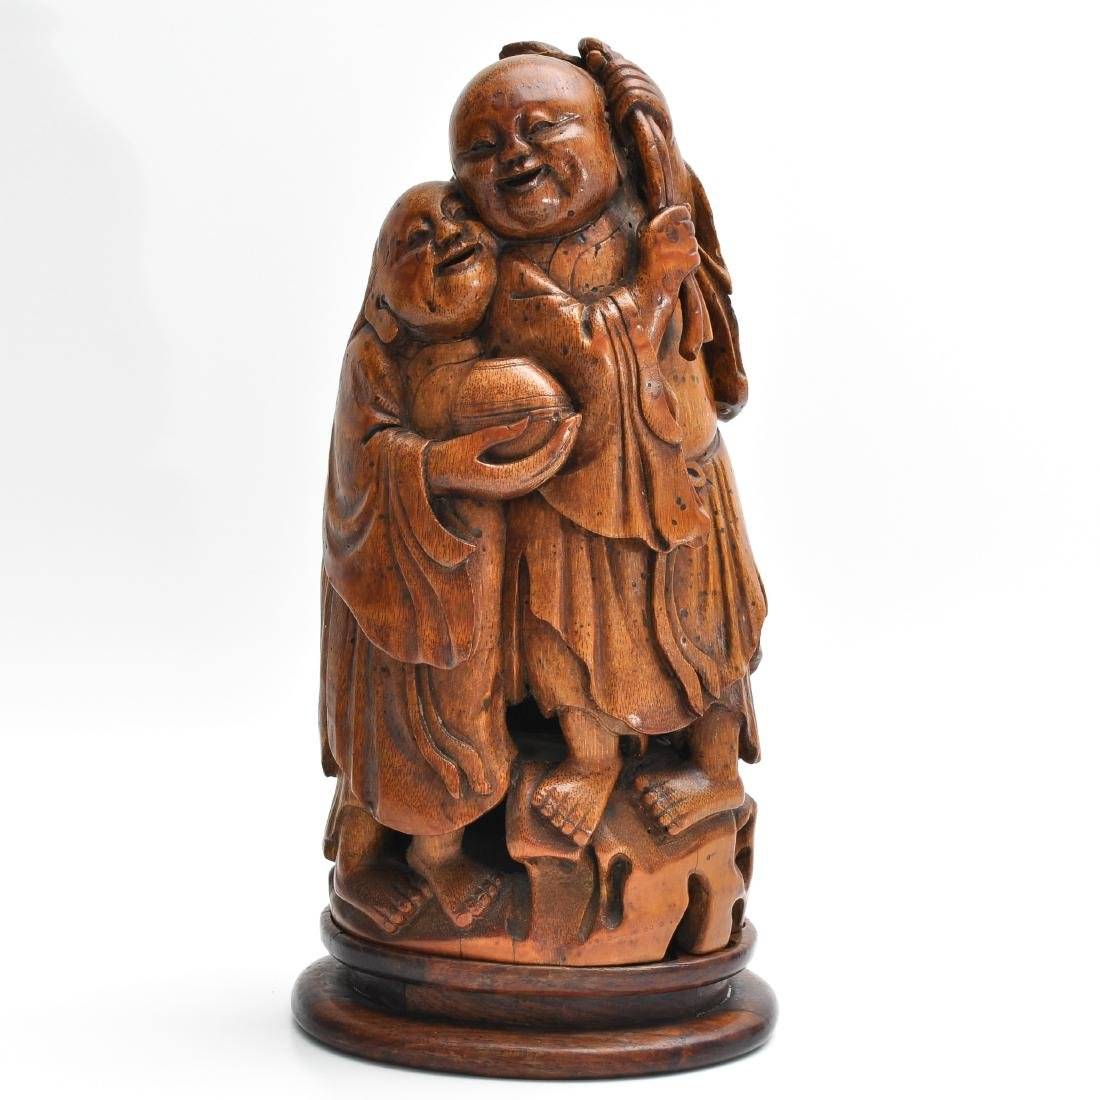 A Carved Bamboo Sculpture